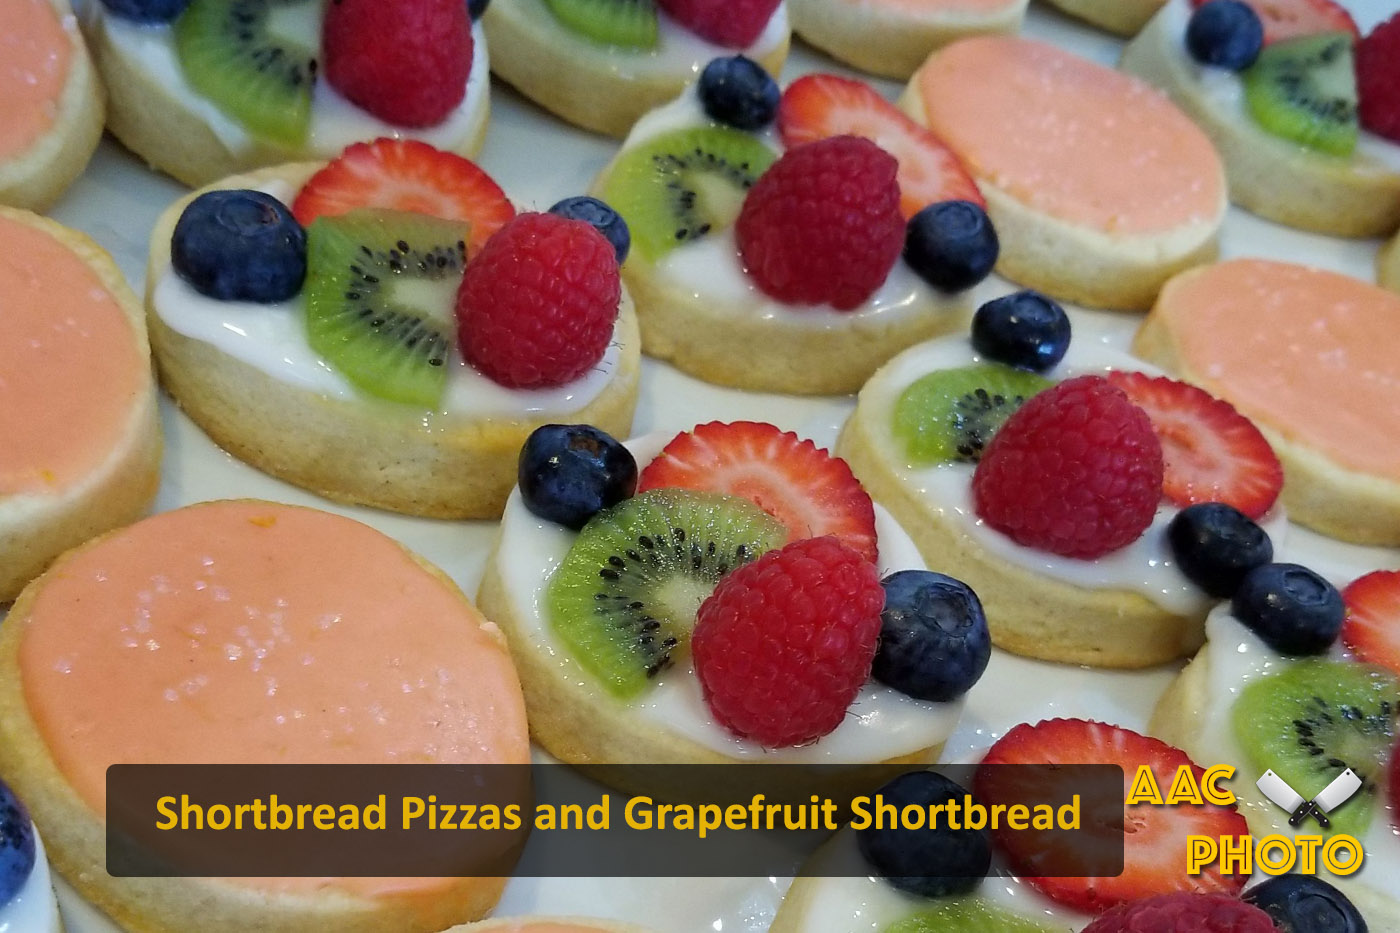 Shortbread Pizza & Grapefruit Shortbread